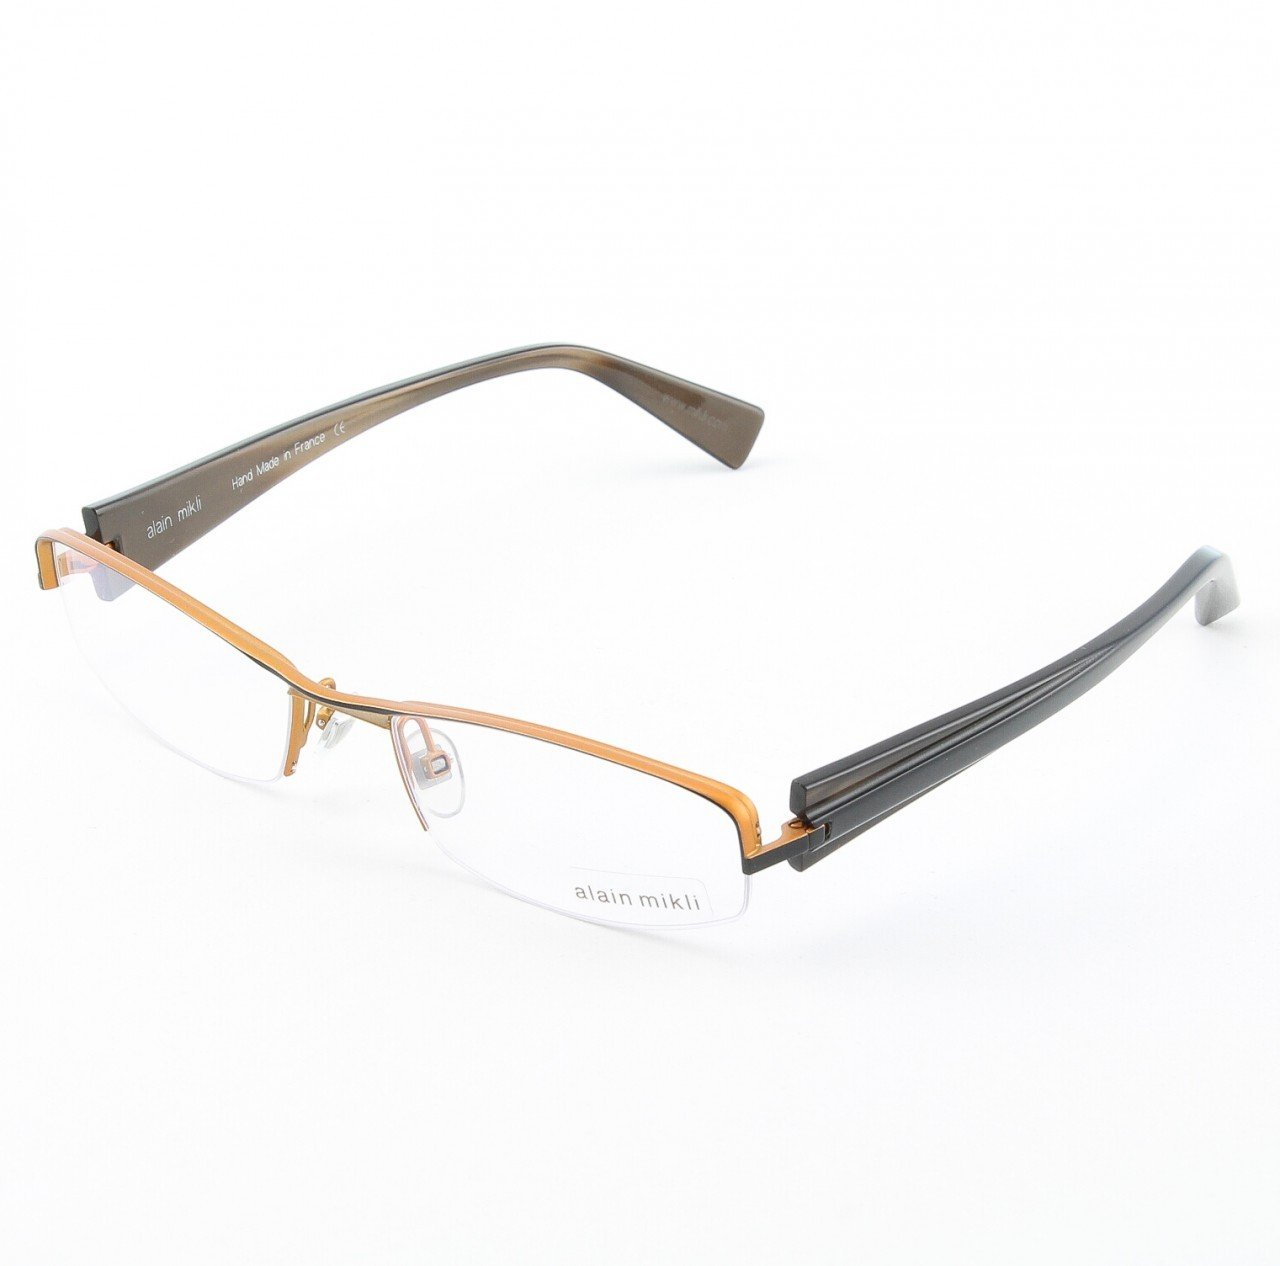 Alain Mikli Eyeglasses AL0695 Col. 11 Copper Metallic Frame with Geometric Black Temple